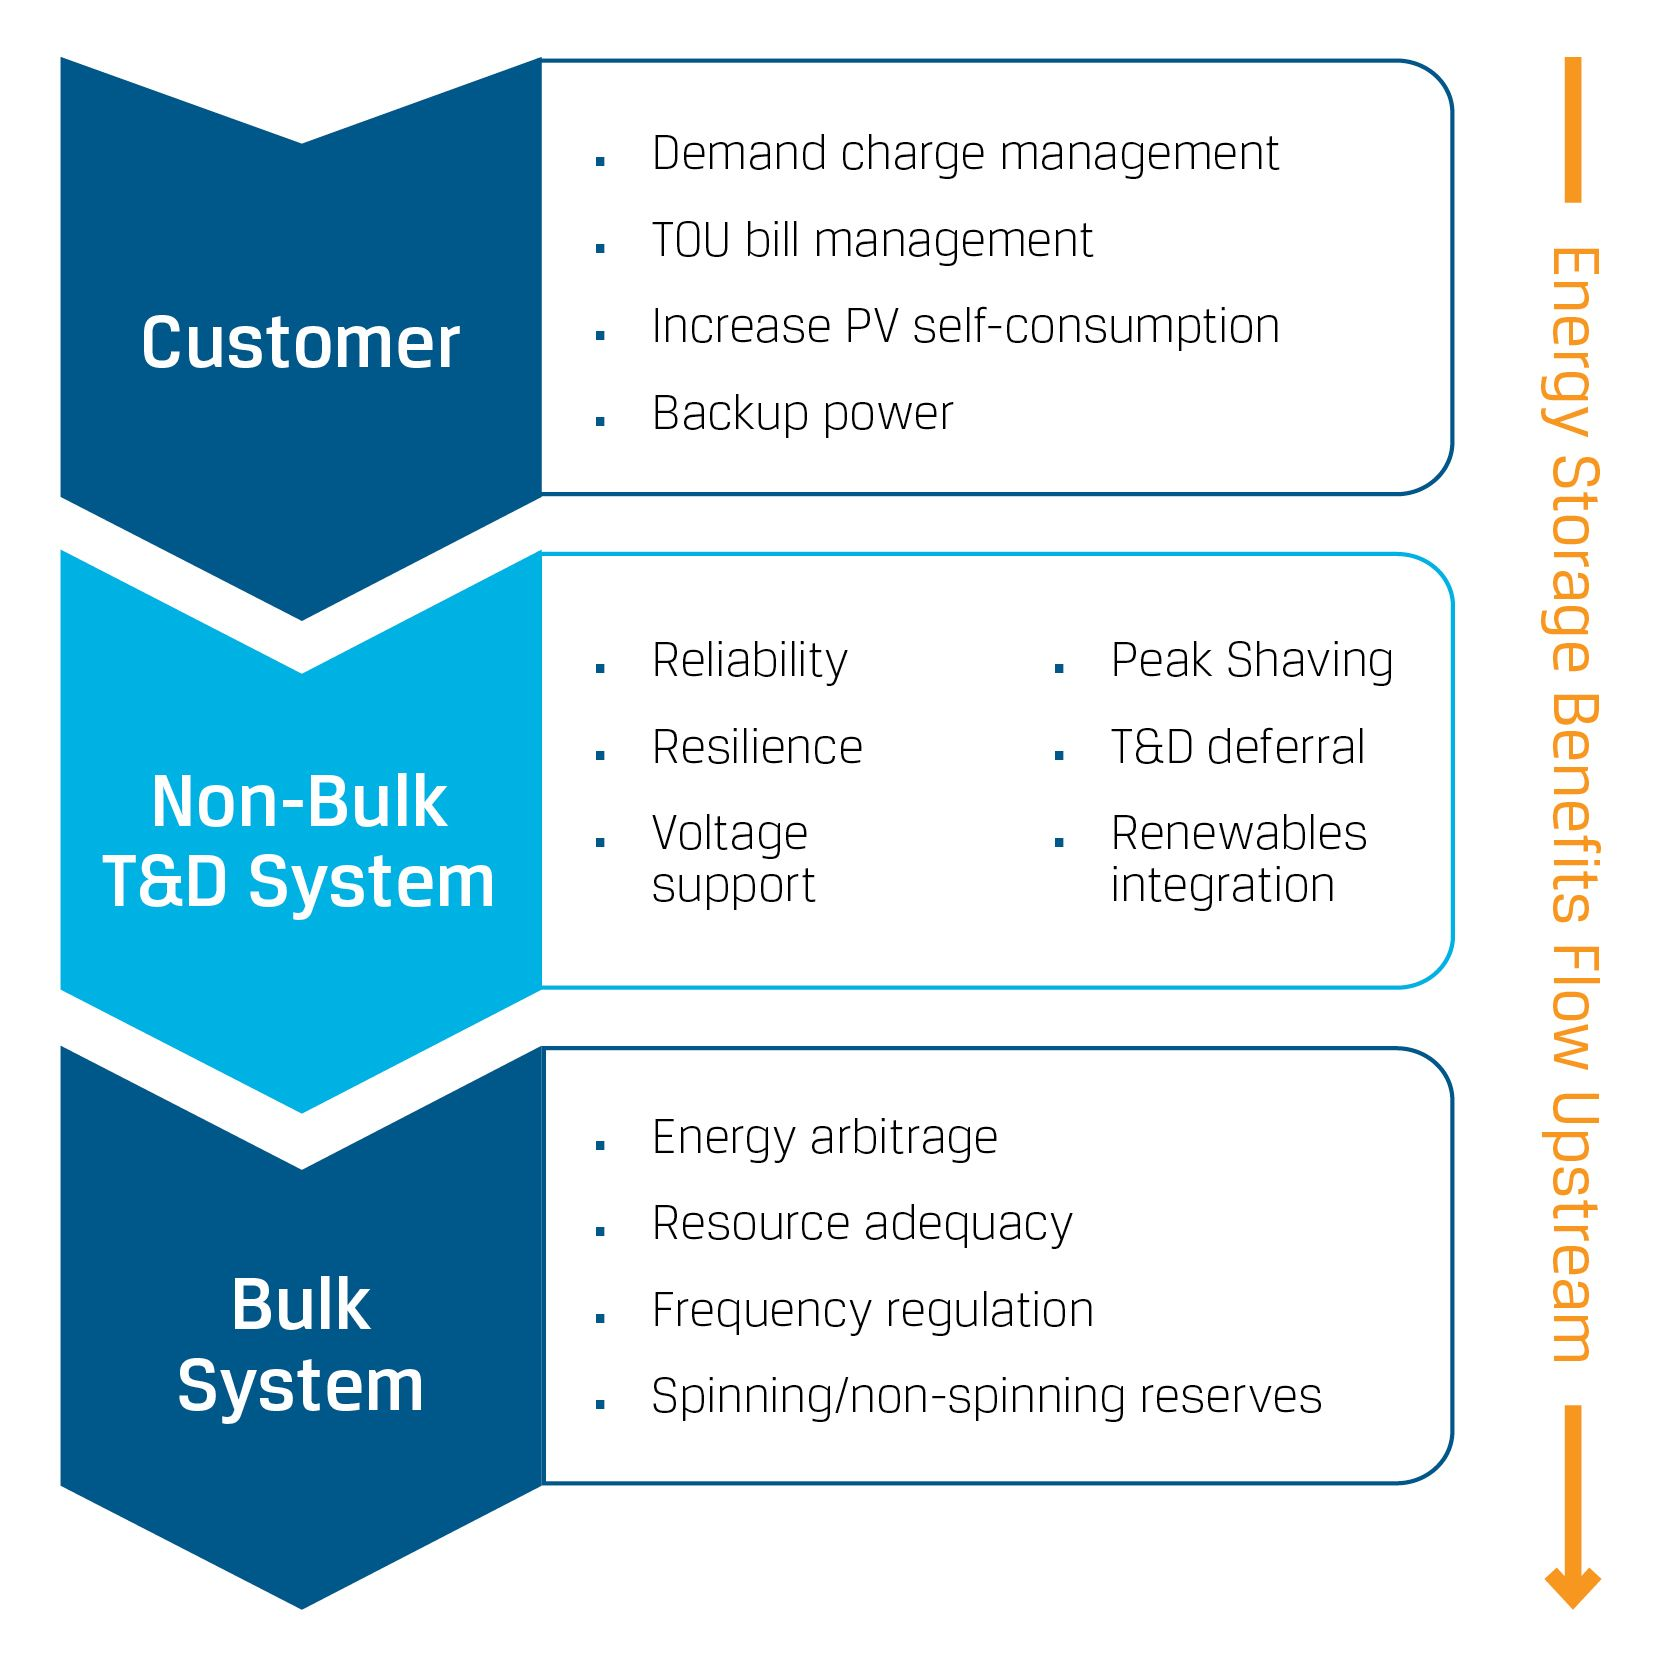 Utility storage graphic showing the path of customer to non-bulk T&D systems to a bulk system